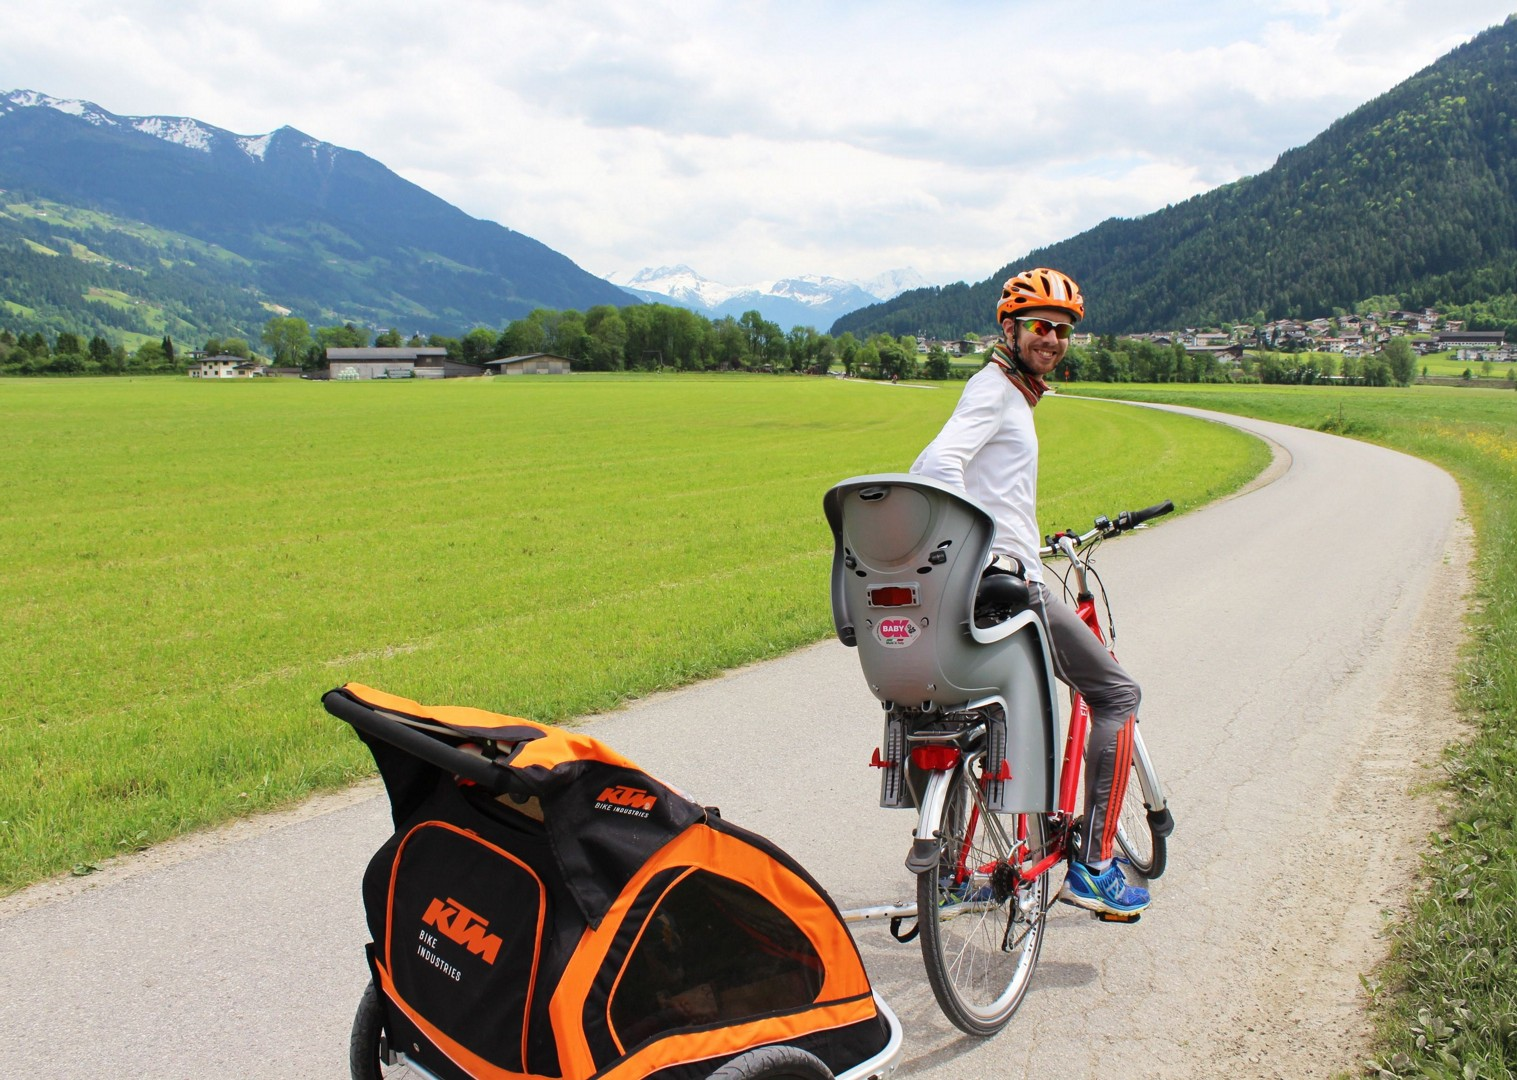 family-cycling-holiday-self-guided-austria-valleys.jpg - Austria - Tyrolean Valleys - Family Cycling